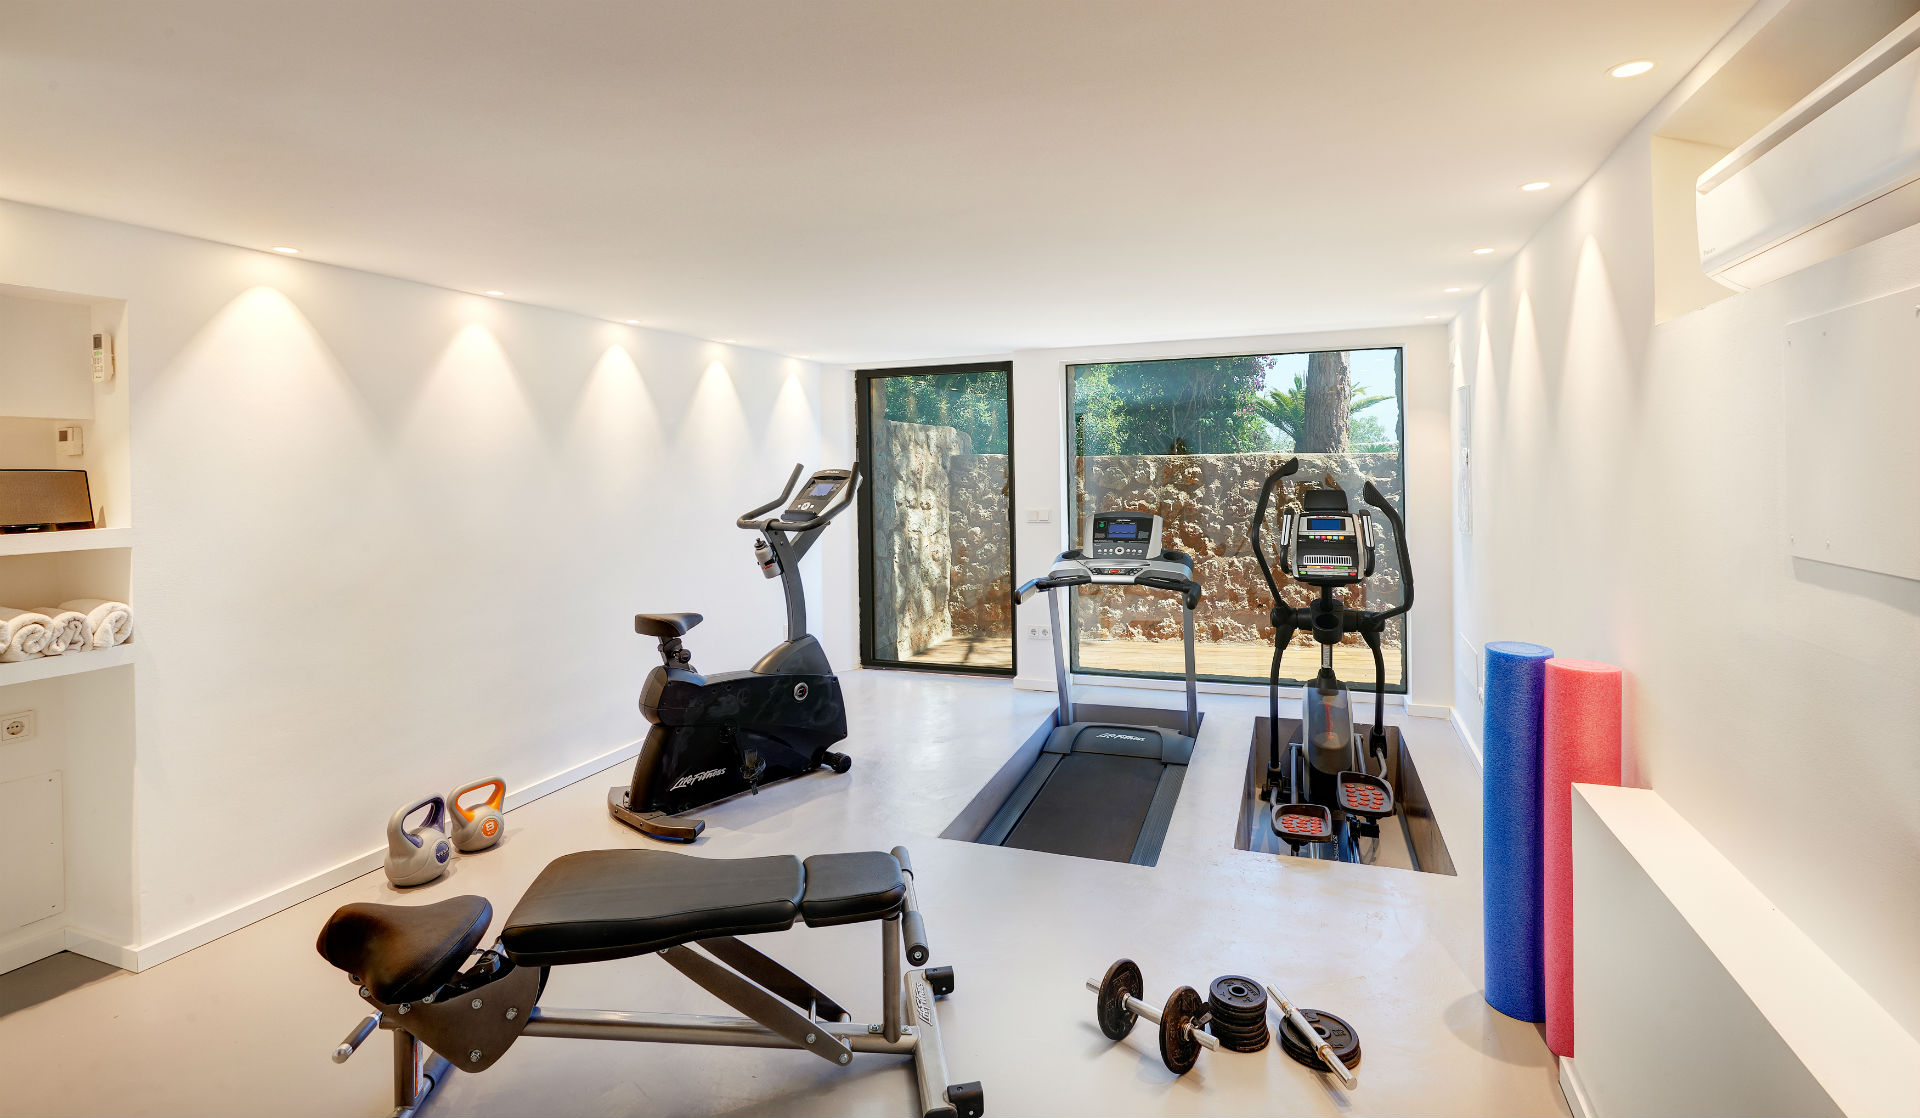 90 Casa Adrover Fitness Suite